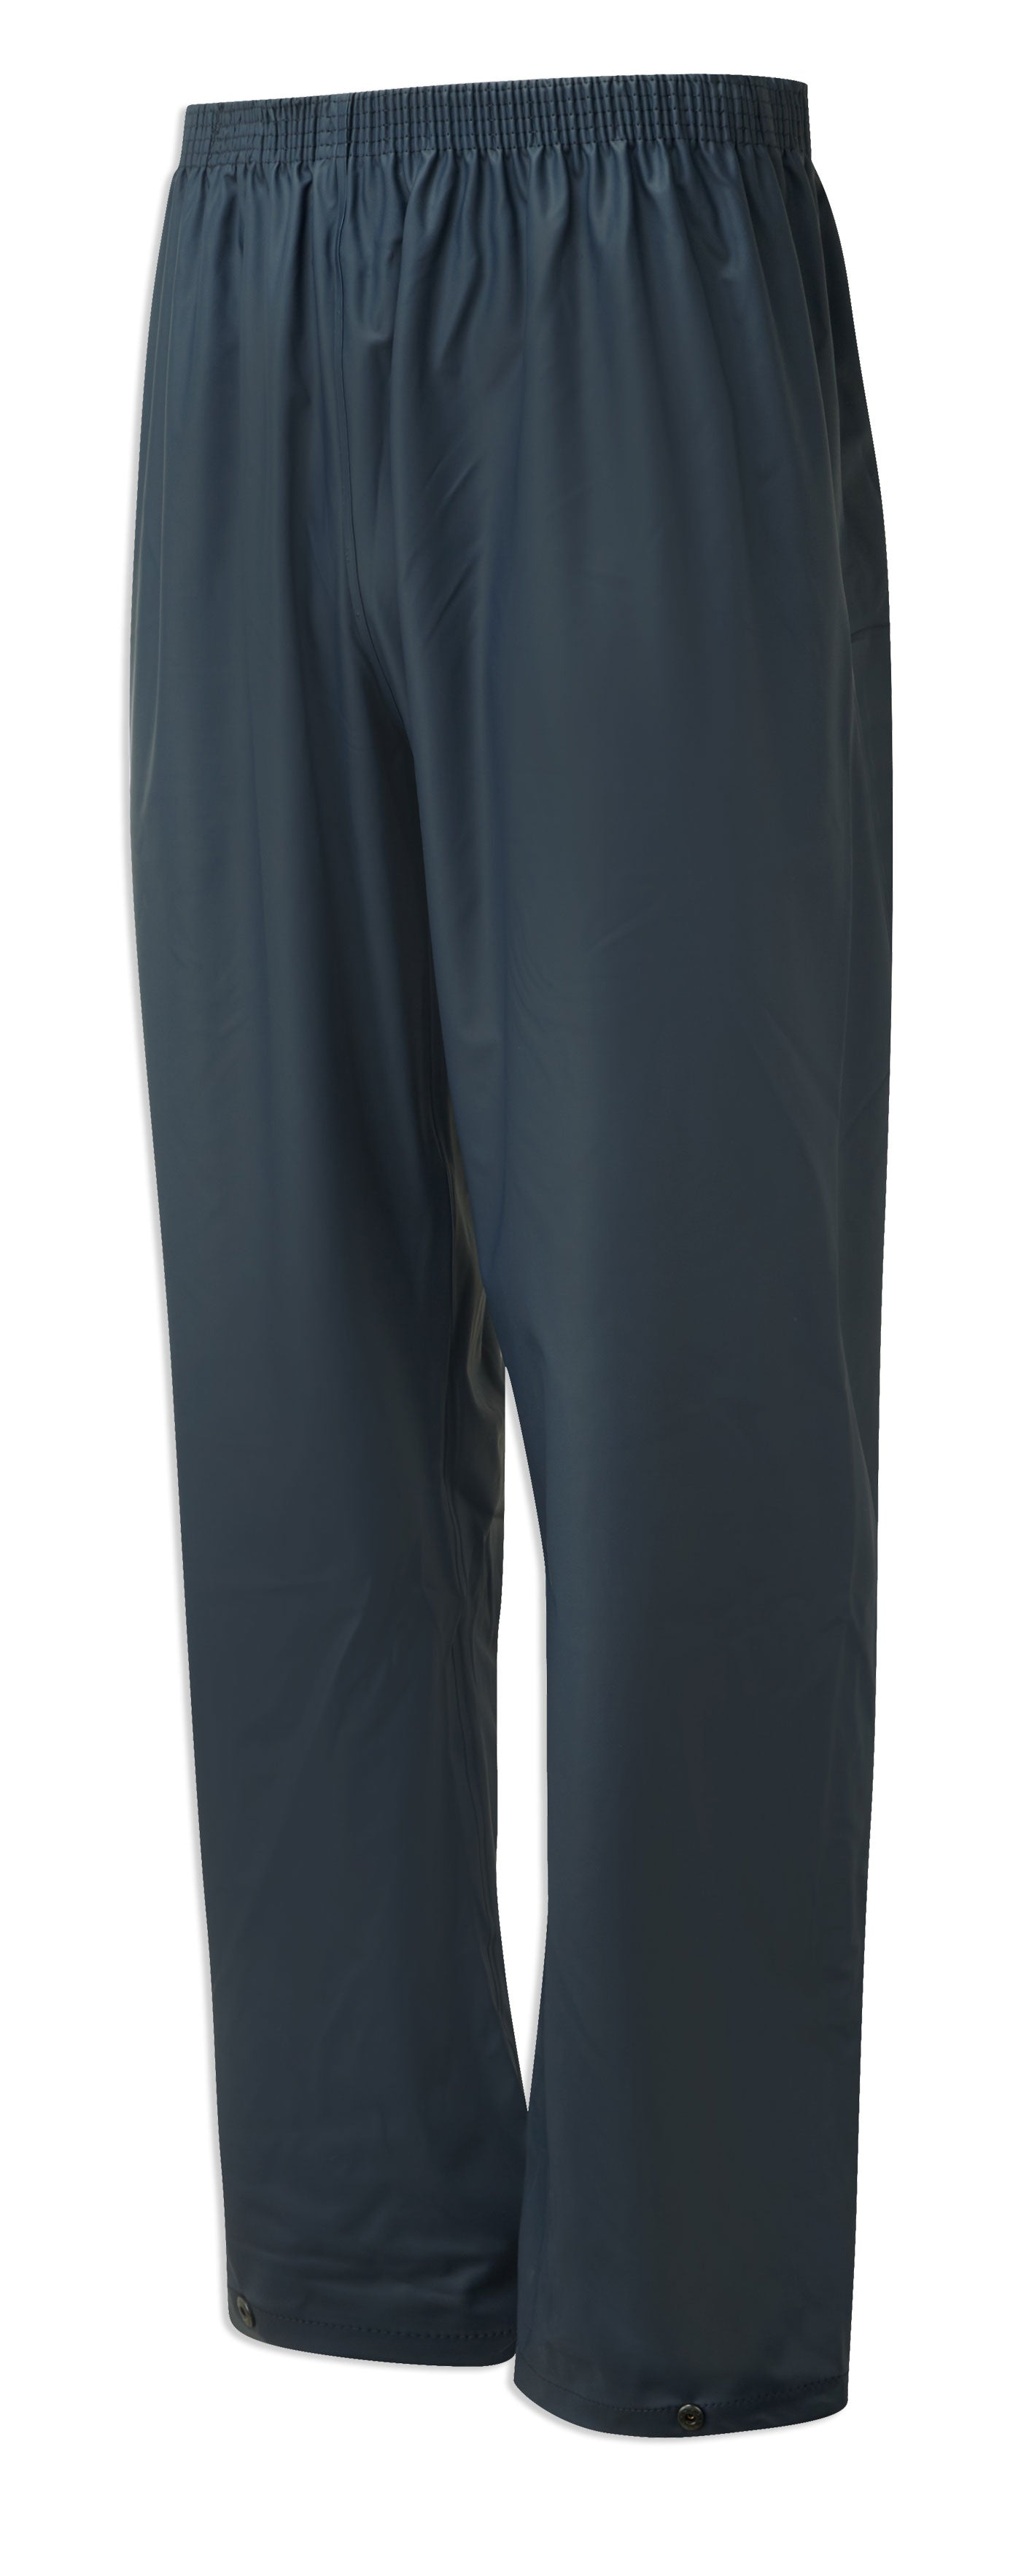 Navy blue waterproof trousers from castle protective clothing